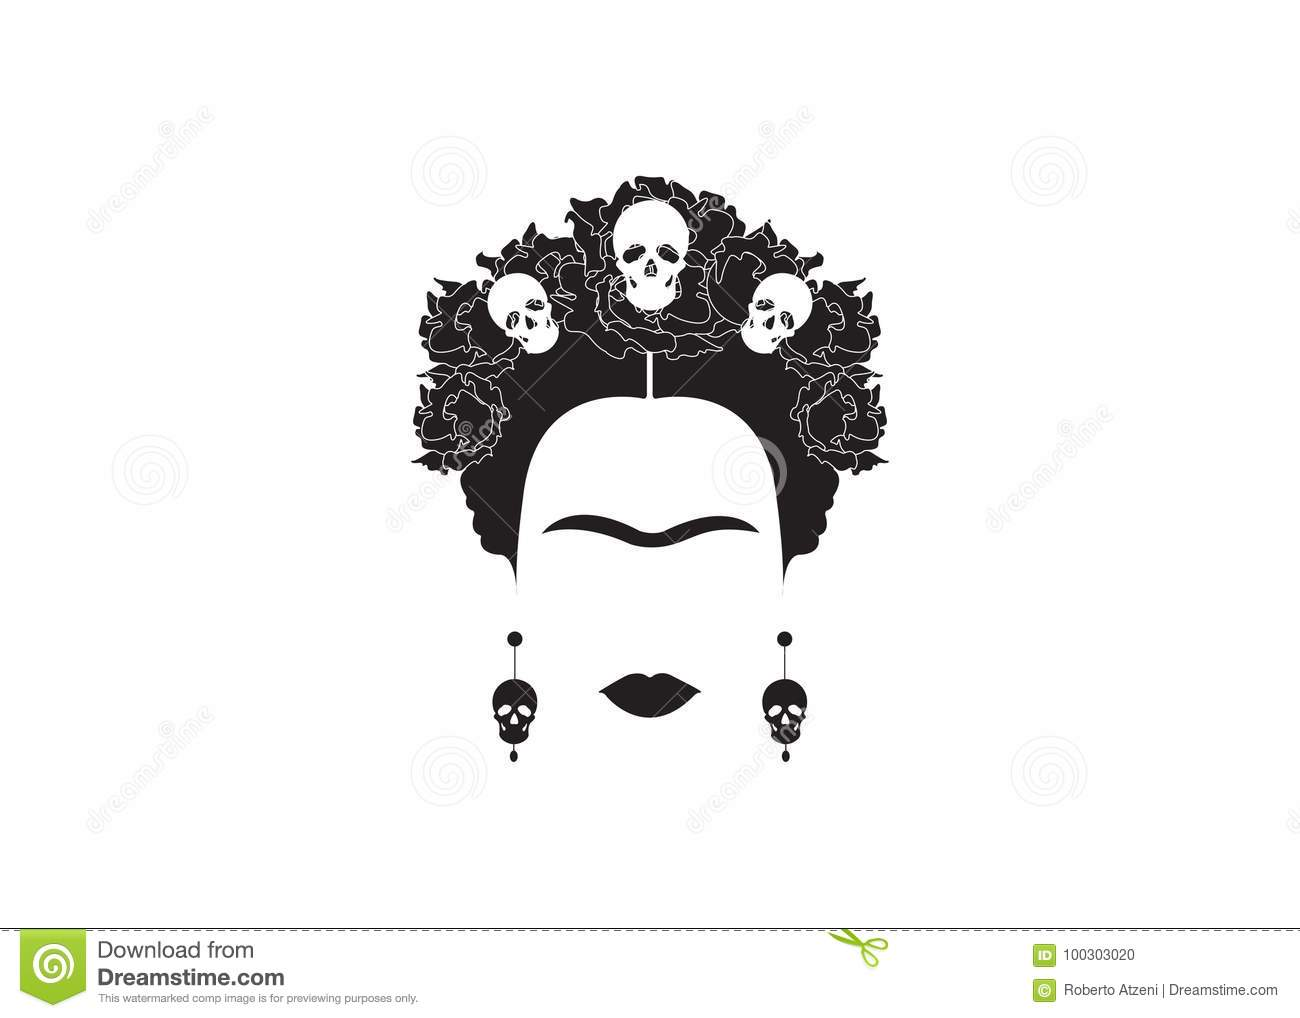 Frida Kahlo minimalist portrait with earrings and roses